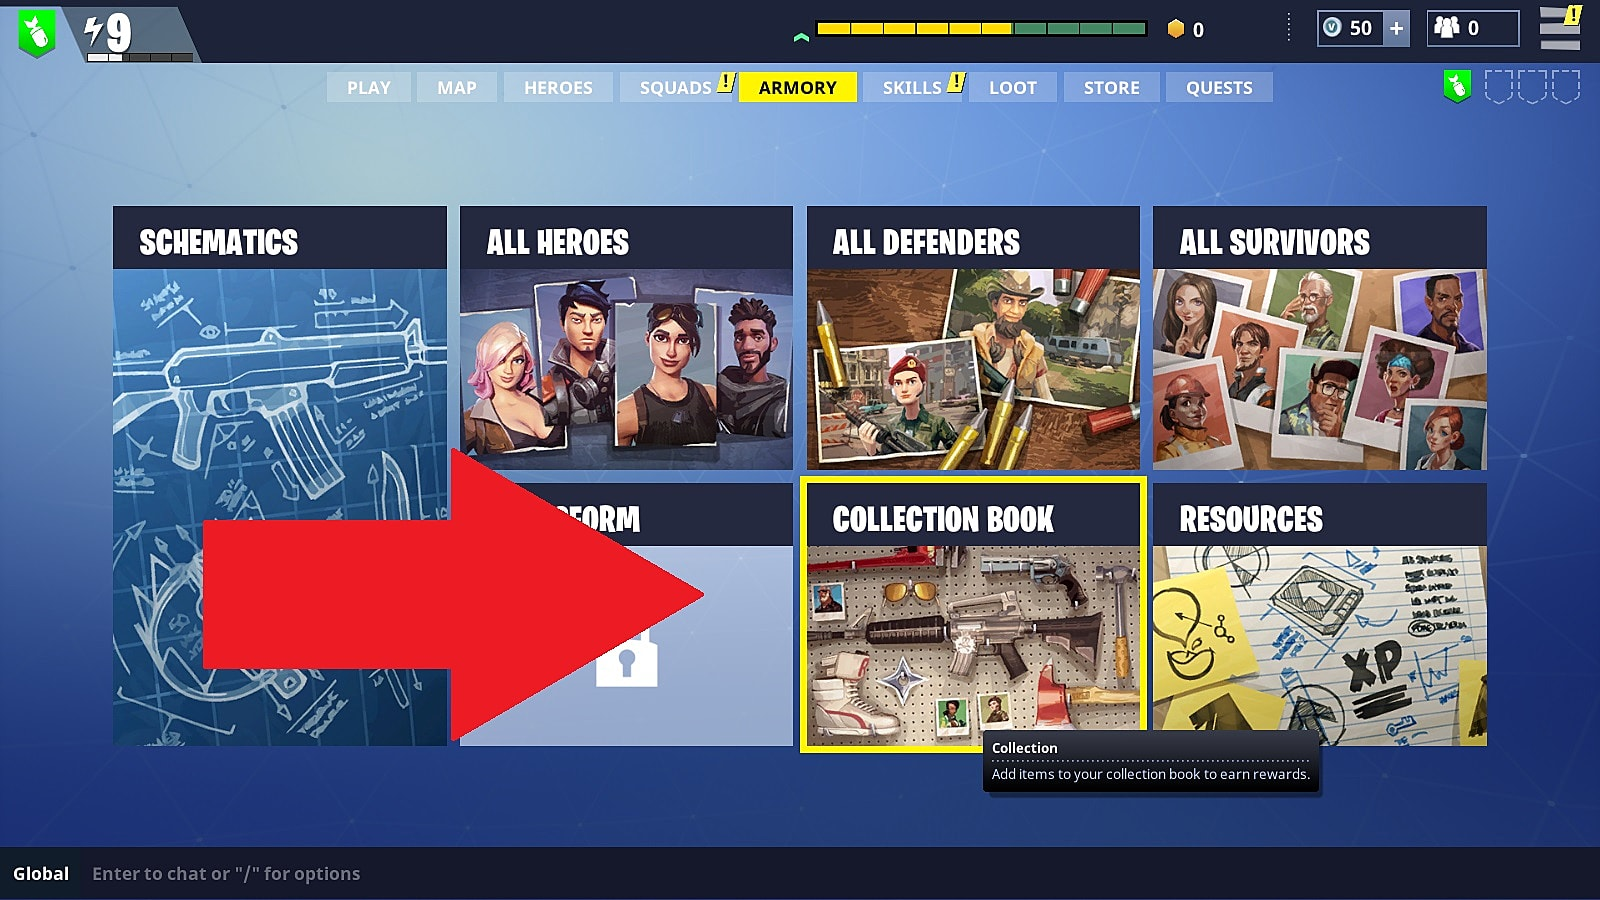 Fortnite Guide To Understanding The Collection Book | Fortnite